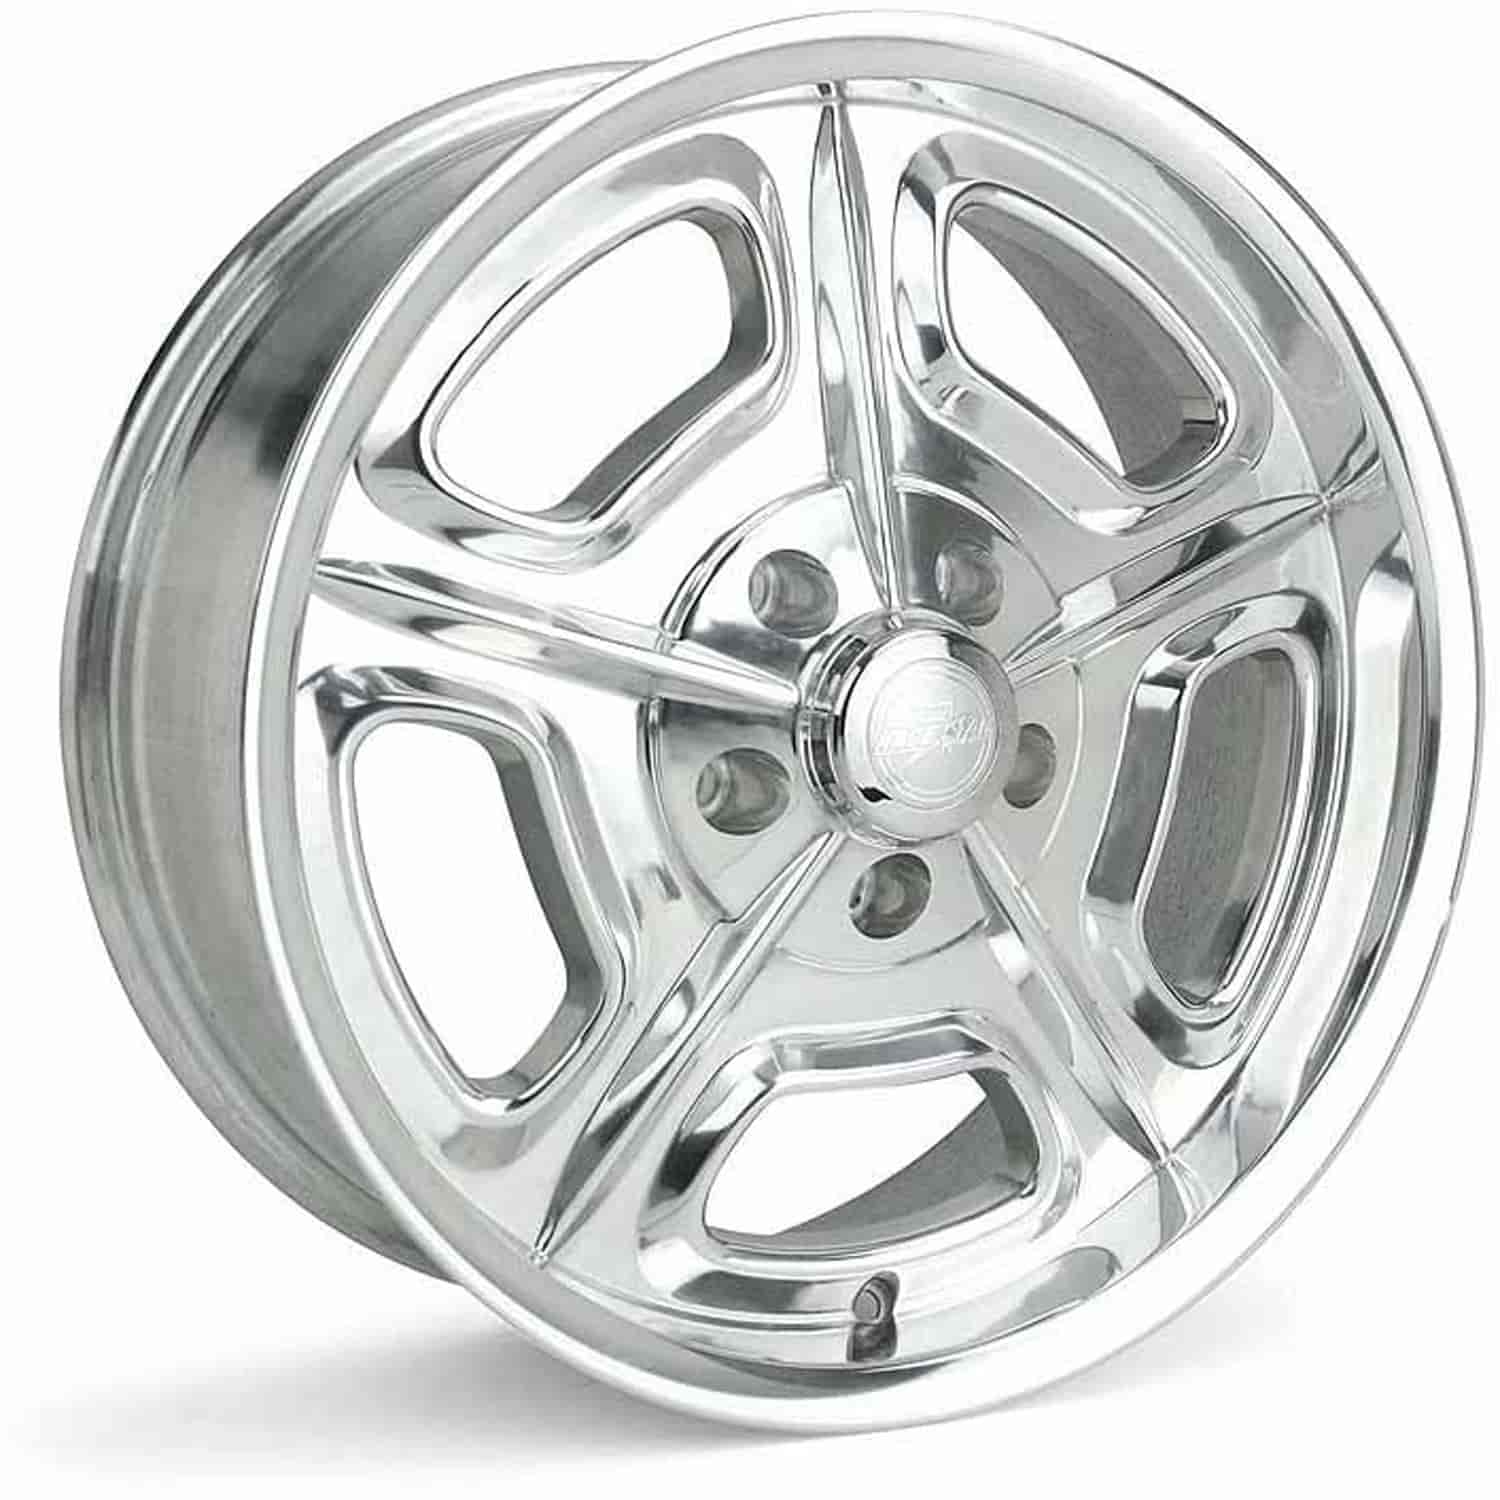 Race Star Wheels 32-510248P